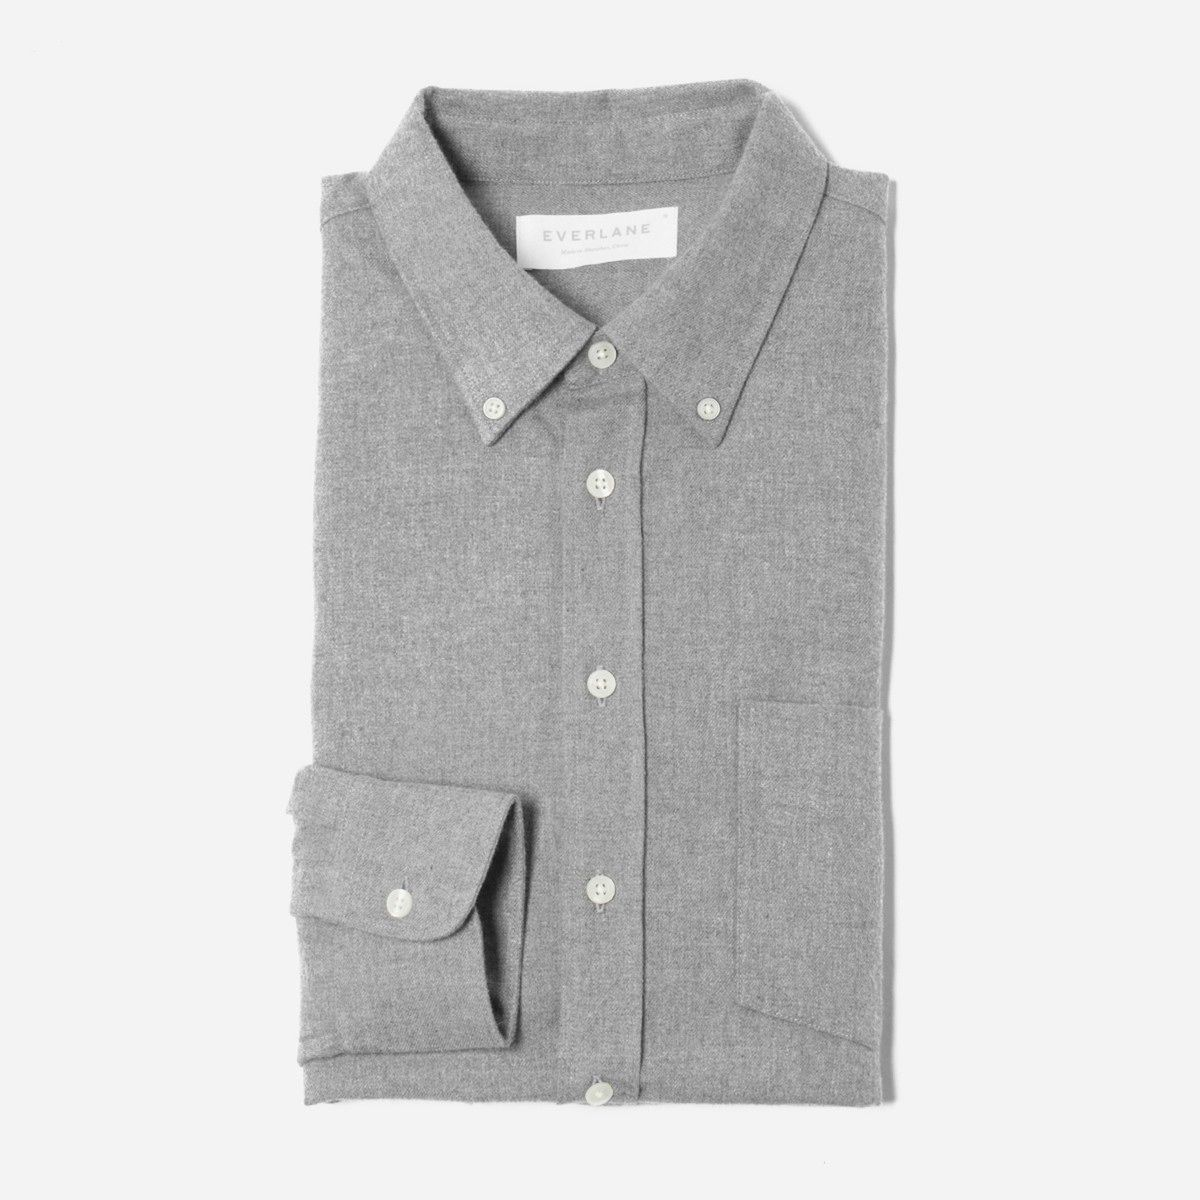 Grey flannel jacket  Everlane  The Modern Flannel Shirt  minyle  Pinterest